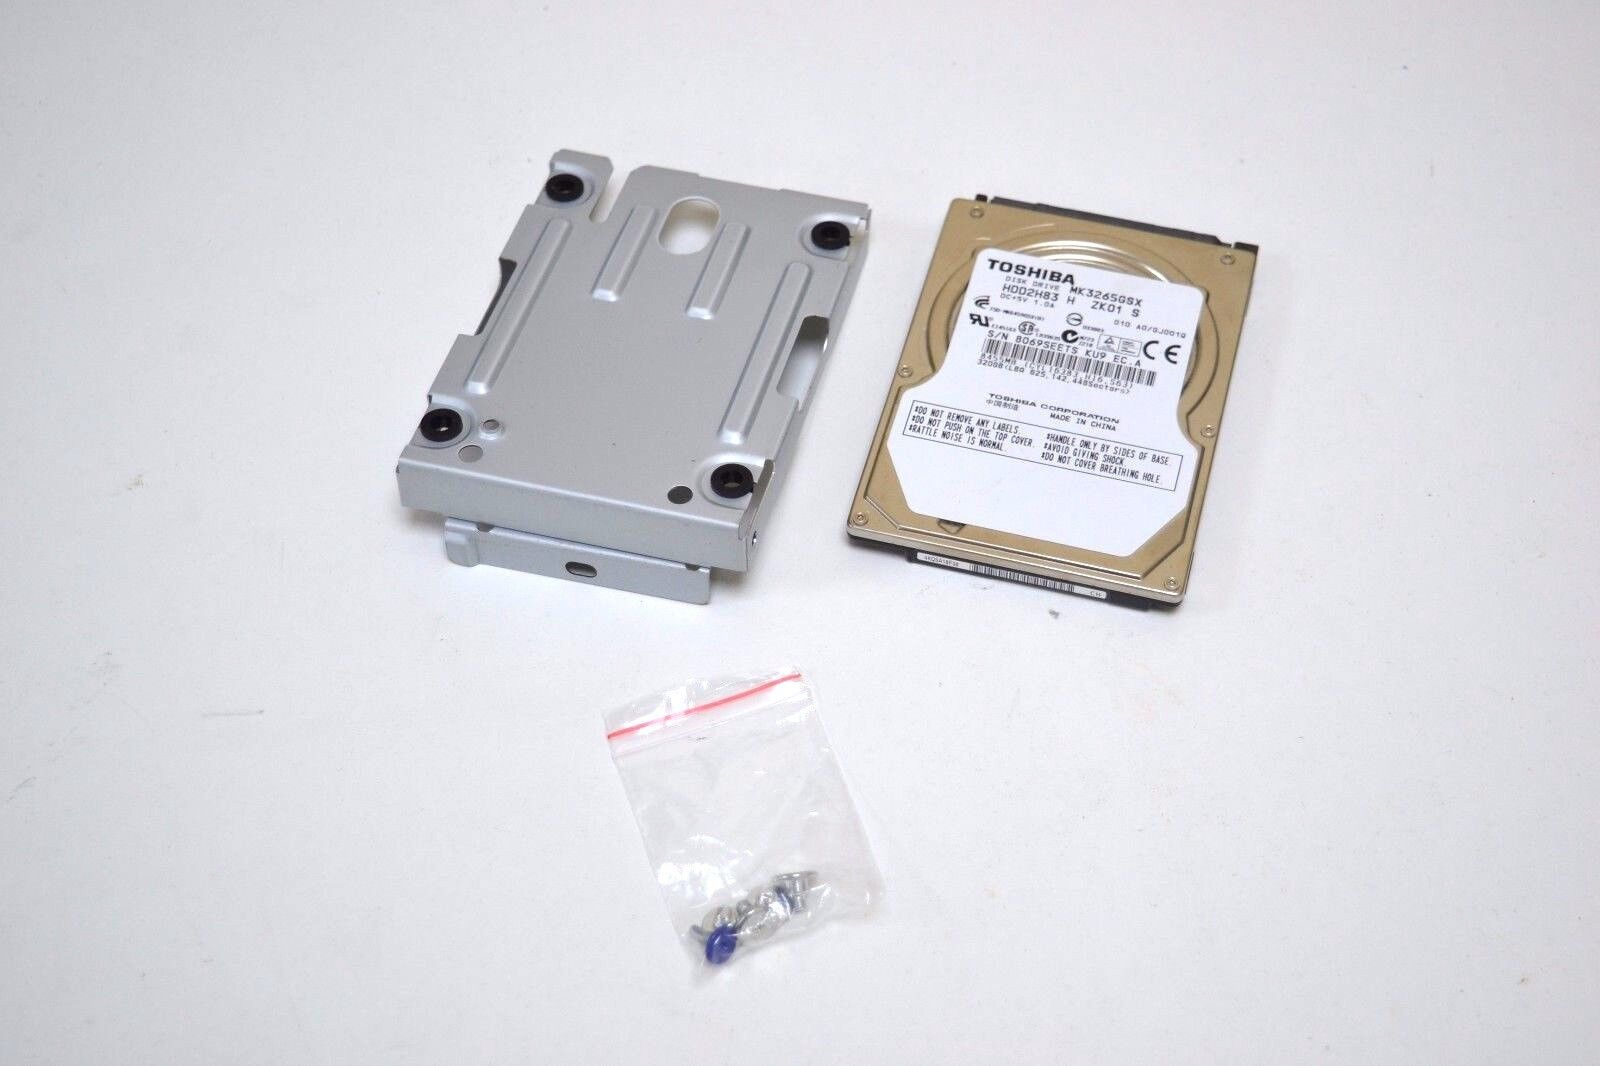 320gb Ps3 Super Slim 25 Hard Disk Drive Upgrade Kit Hdd For Sony Playstation 3 320 Gb 2 Of